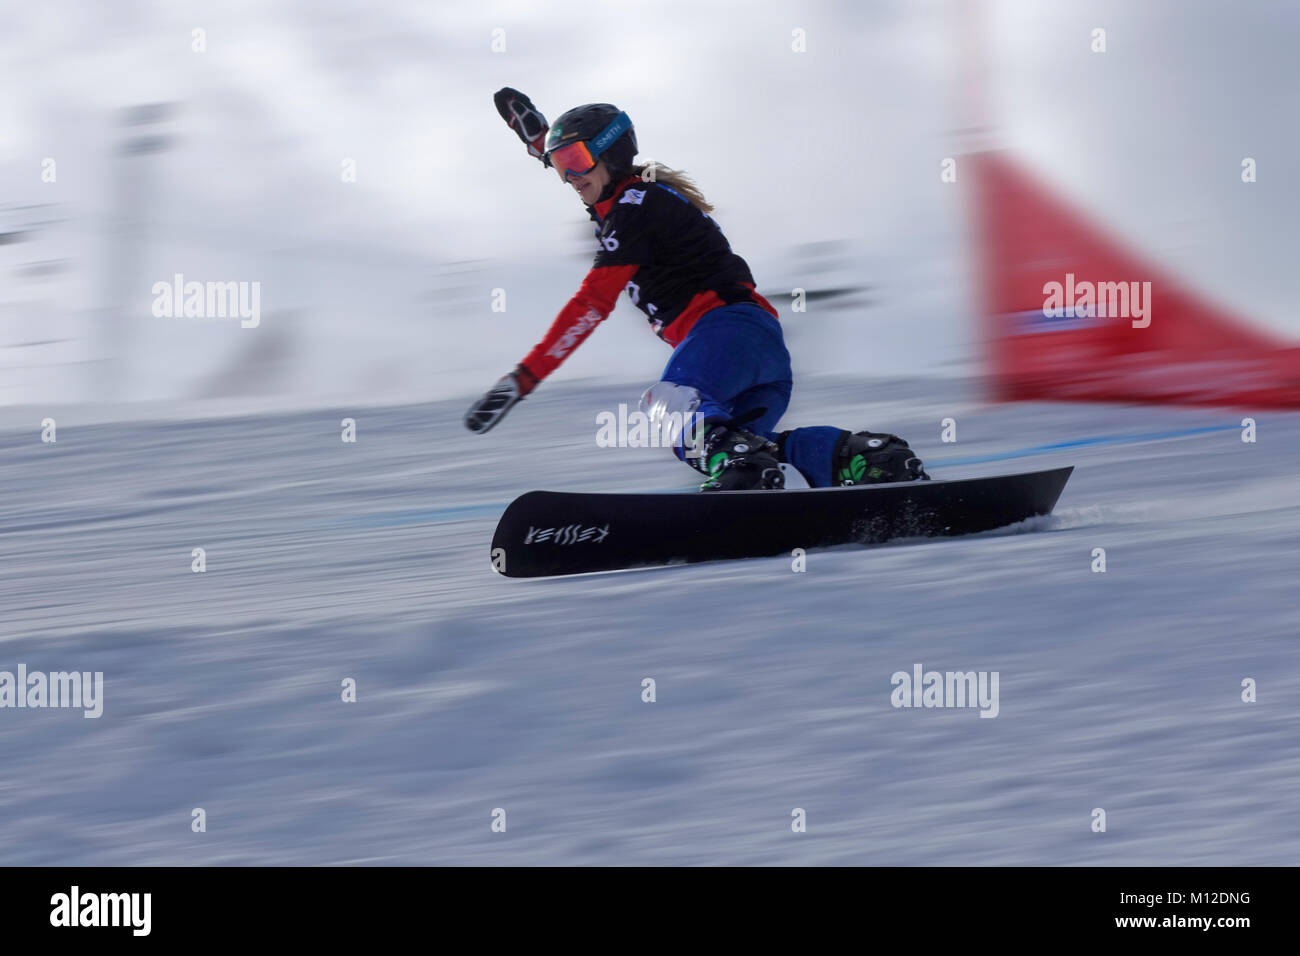 Snowboard Giant Slalom Competition.  Female competitor. Motion blur. Rogla ski resort, Slovenia. - Stock Image